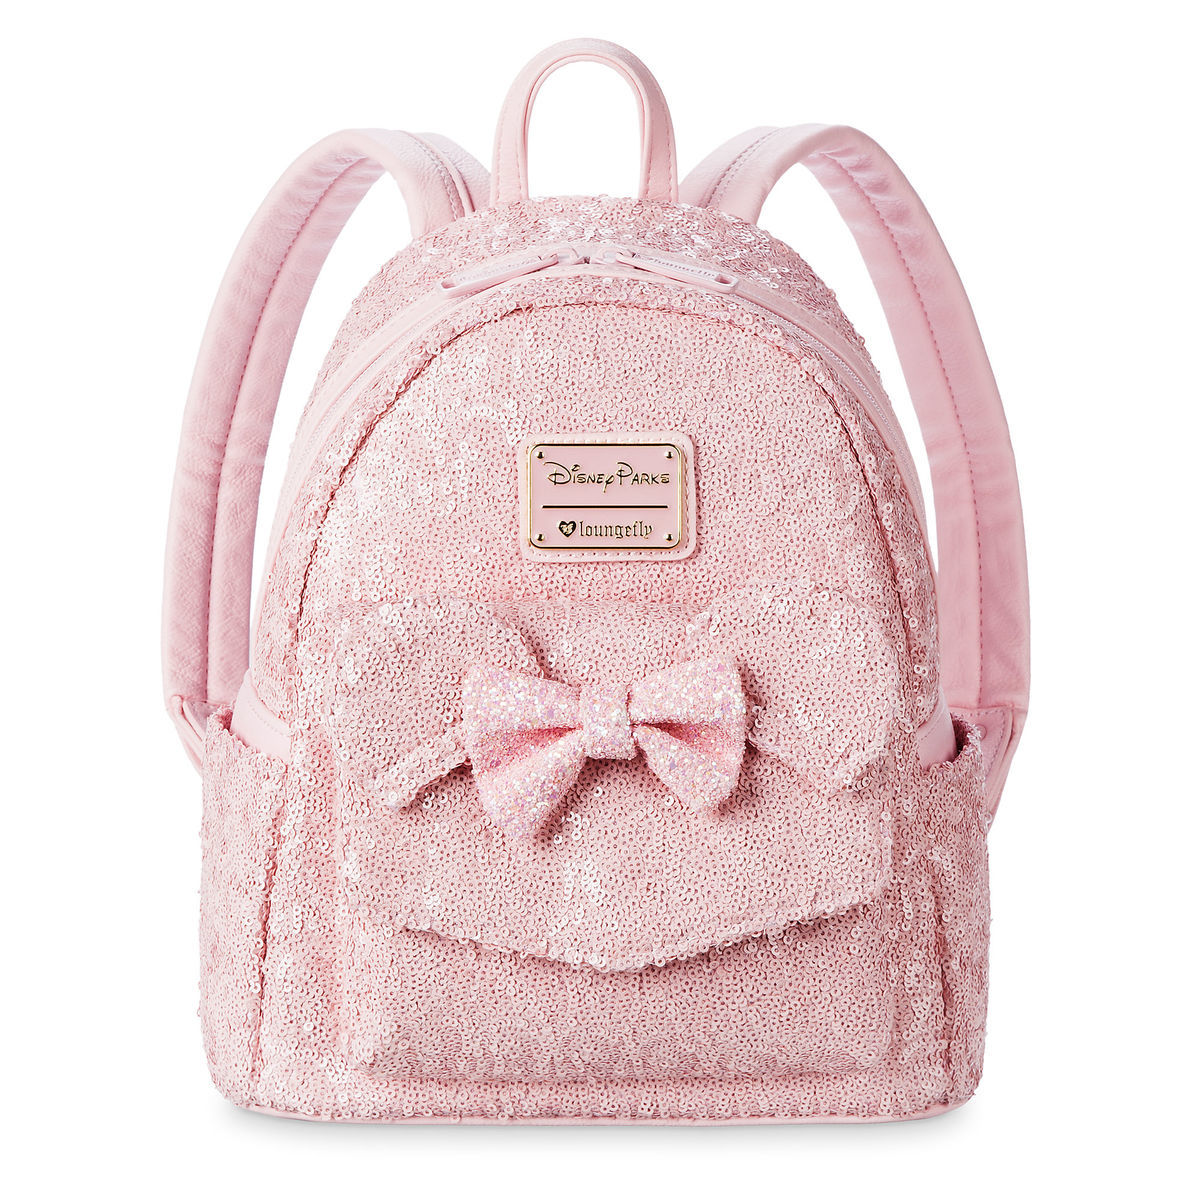 2b467290e65 Add to My Lists. Disney Loungefly Backpack - Minnie Mouse Sequined - Light  Pink